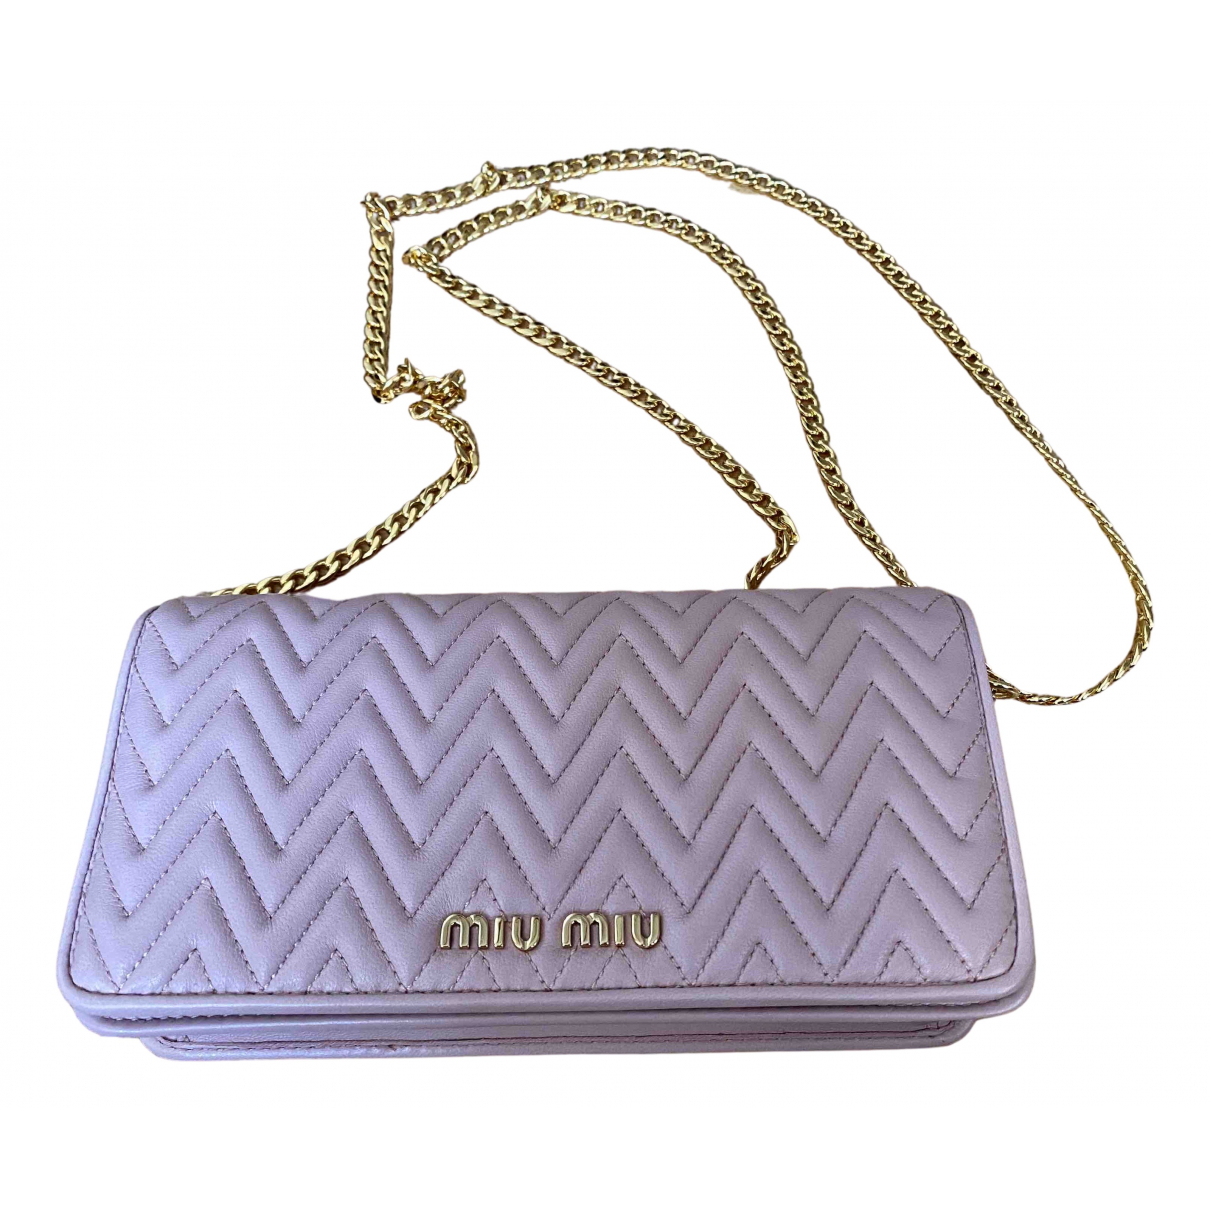 Miu Miu Miu delice Pink Leather handbag for Women N